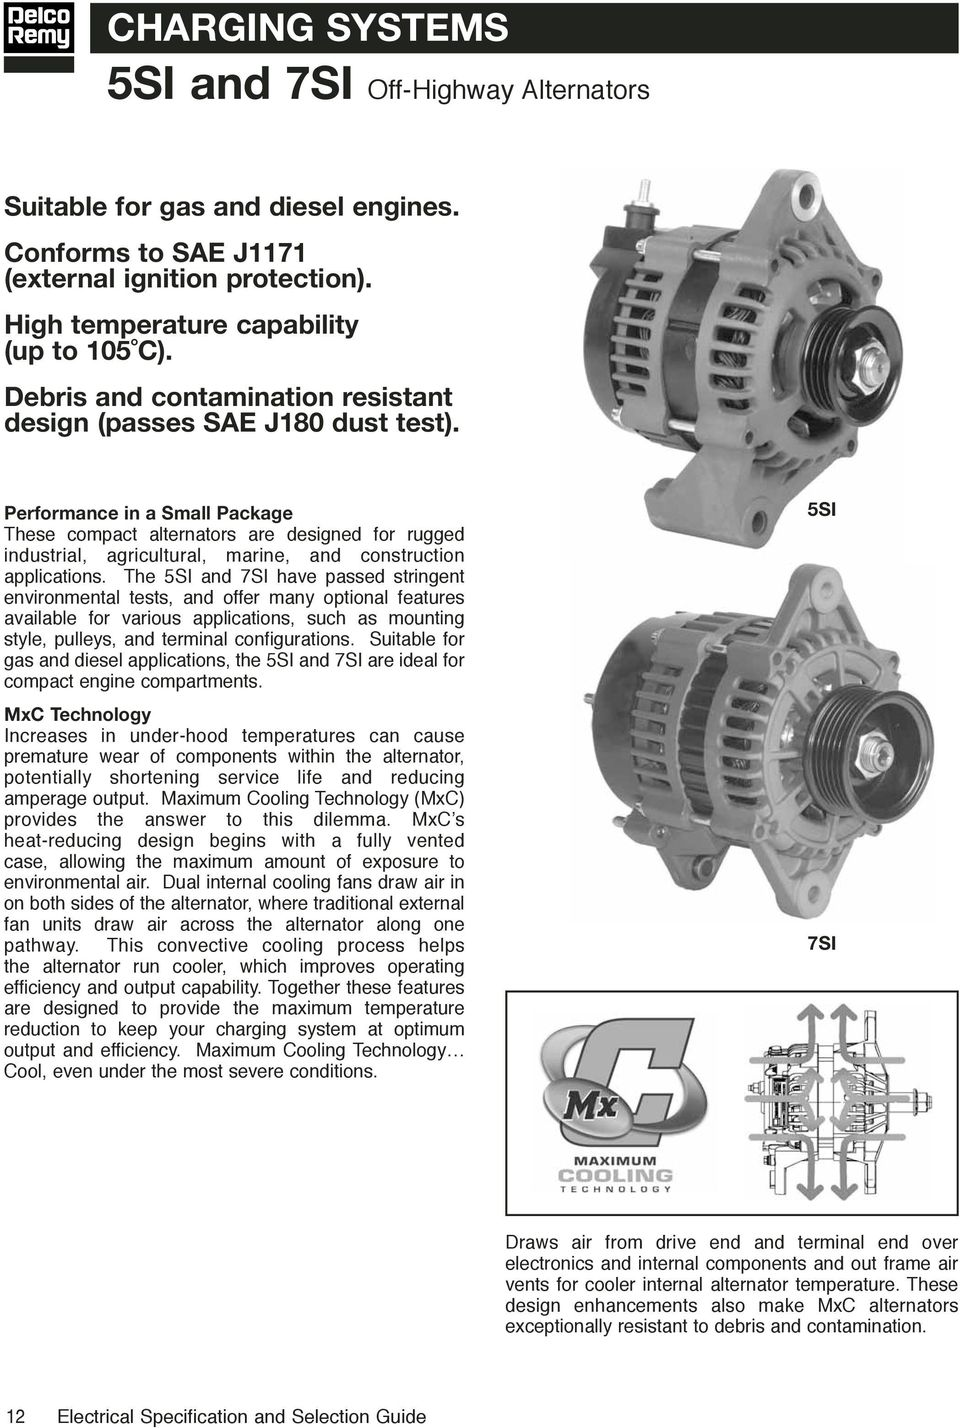 Perfect 4 Wire Delco Remy Alternator Wiring Diagram Frieze - Wiring ...